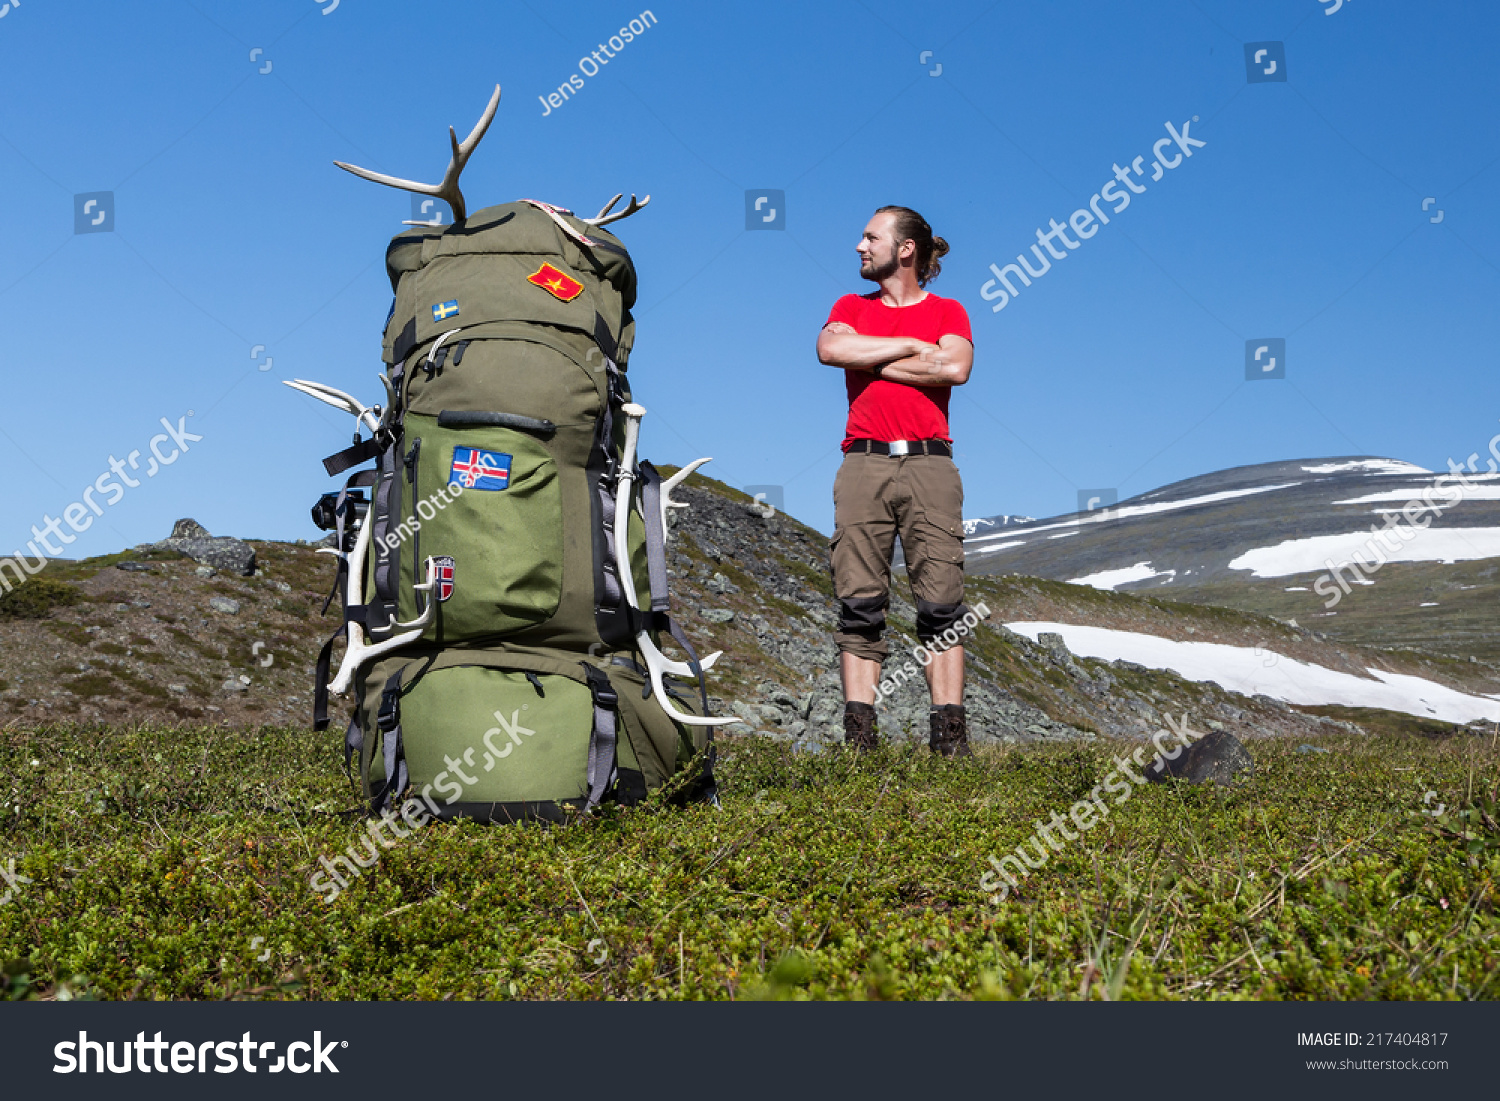 49a1dd905a Hiker Huge Backpack Stock Photo (Edit Now) 217404817 - Shutterstock